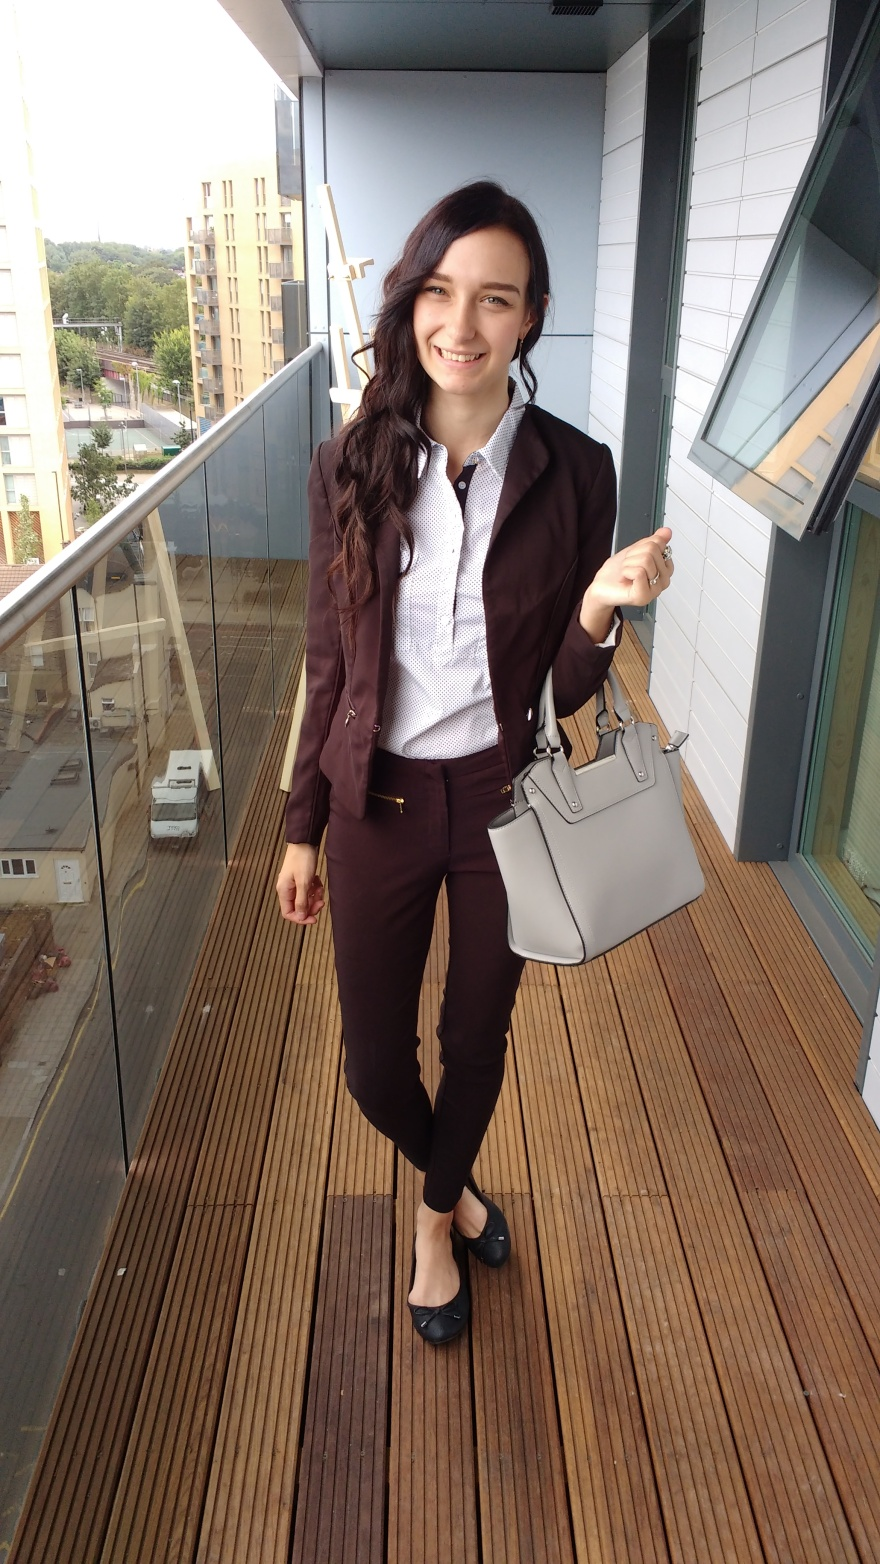 affordably fashionable by rachel oates interview style